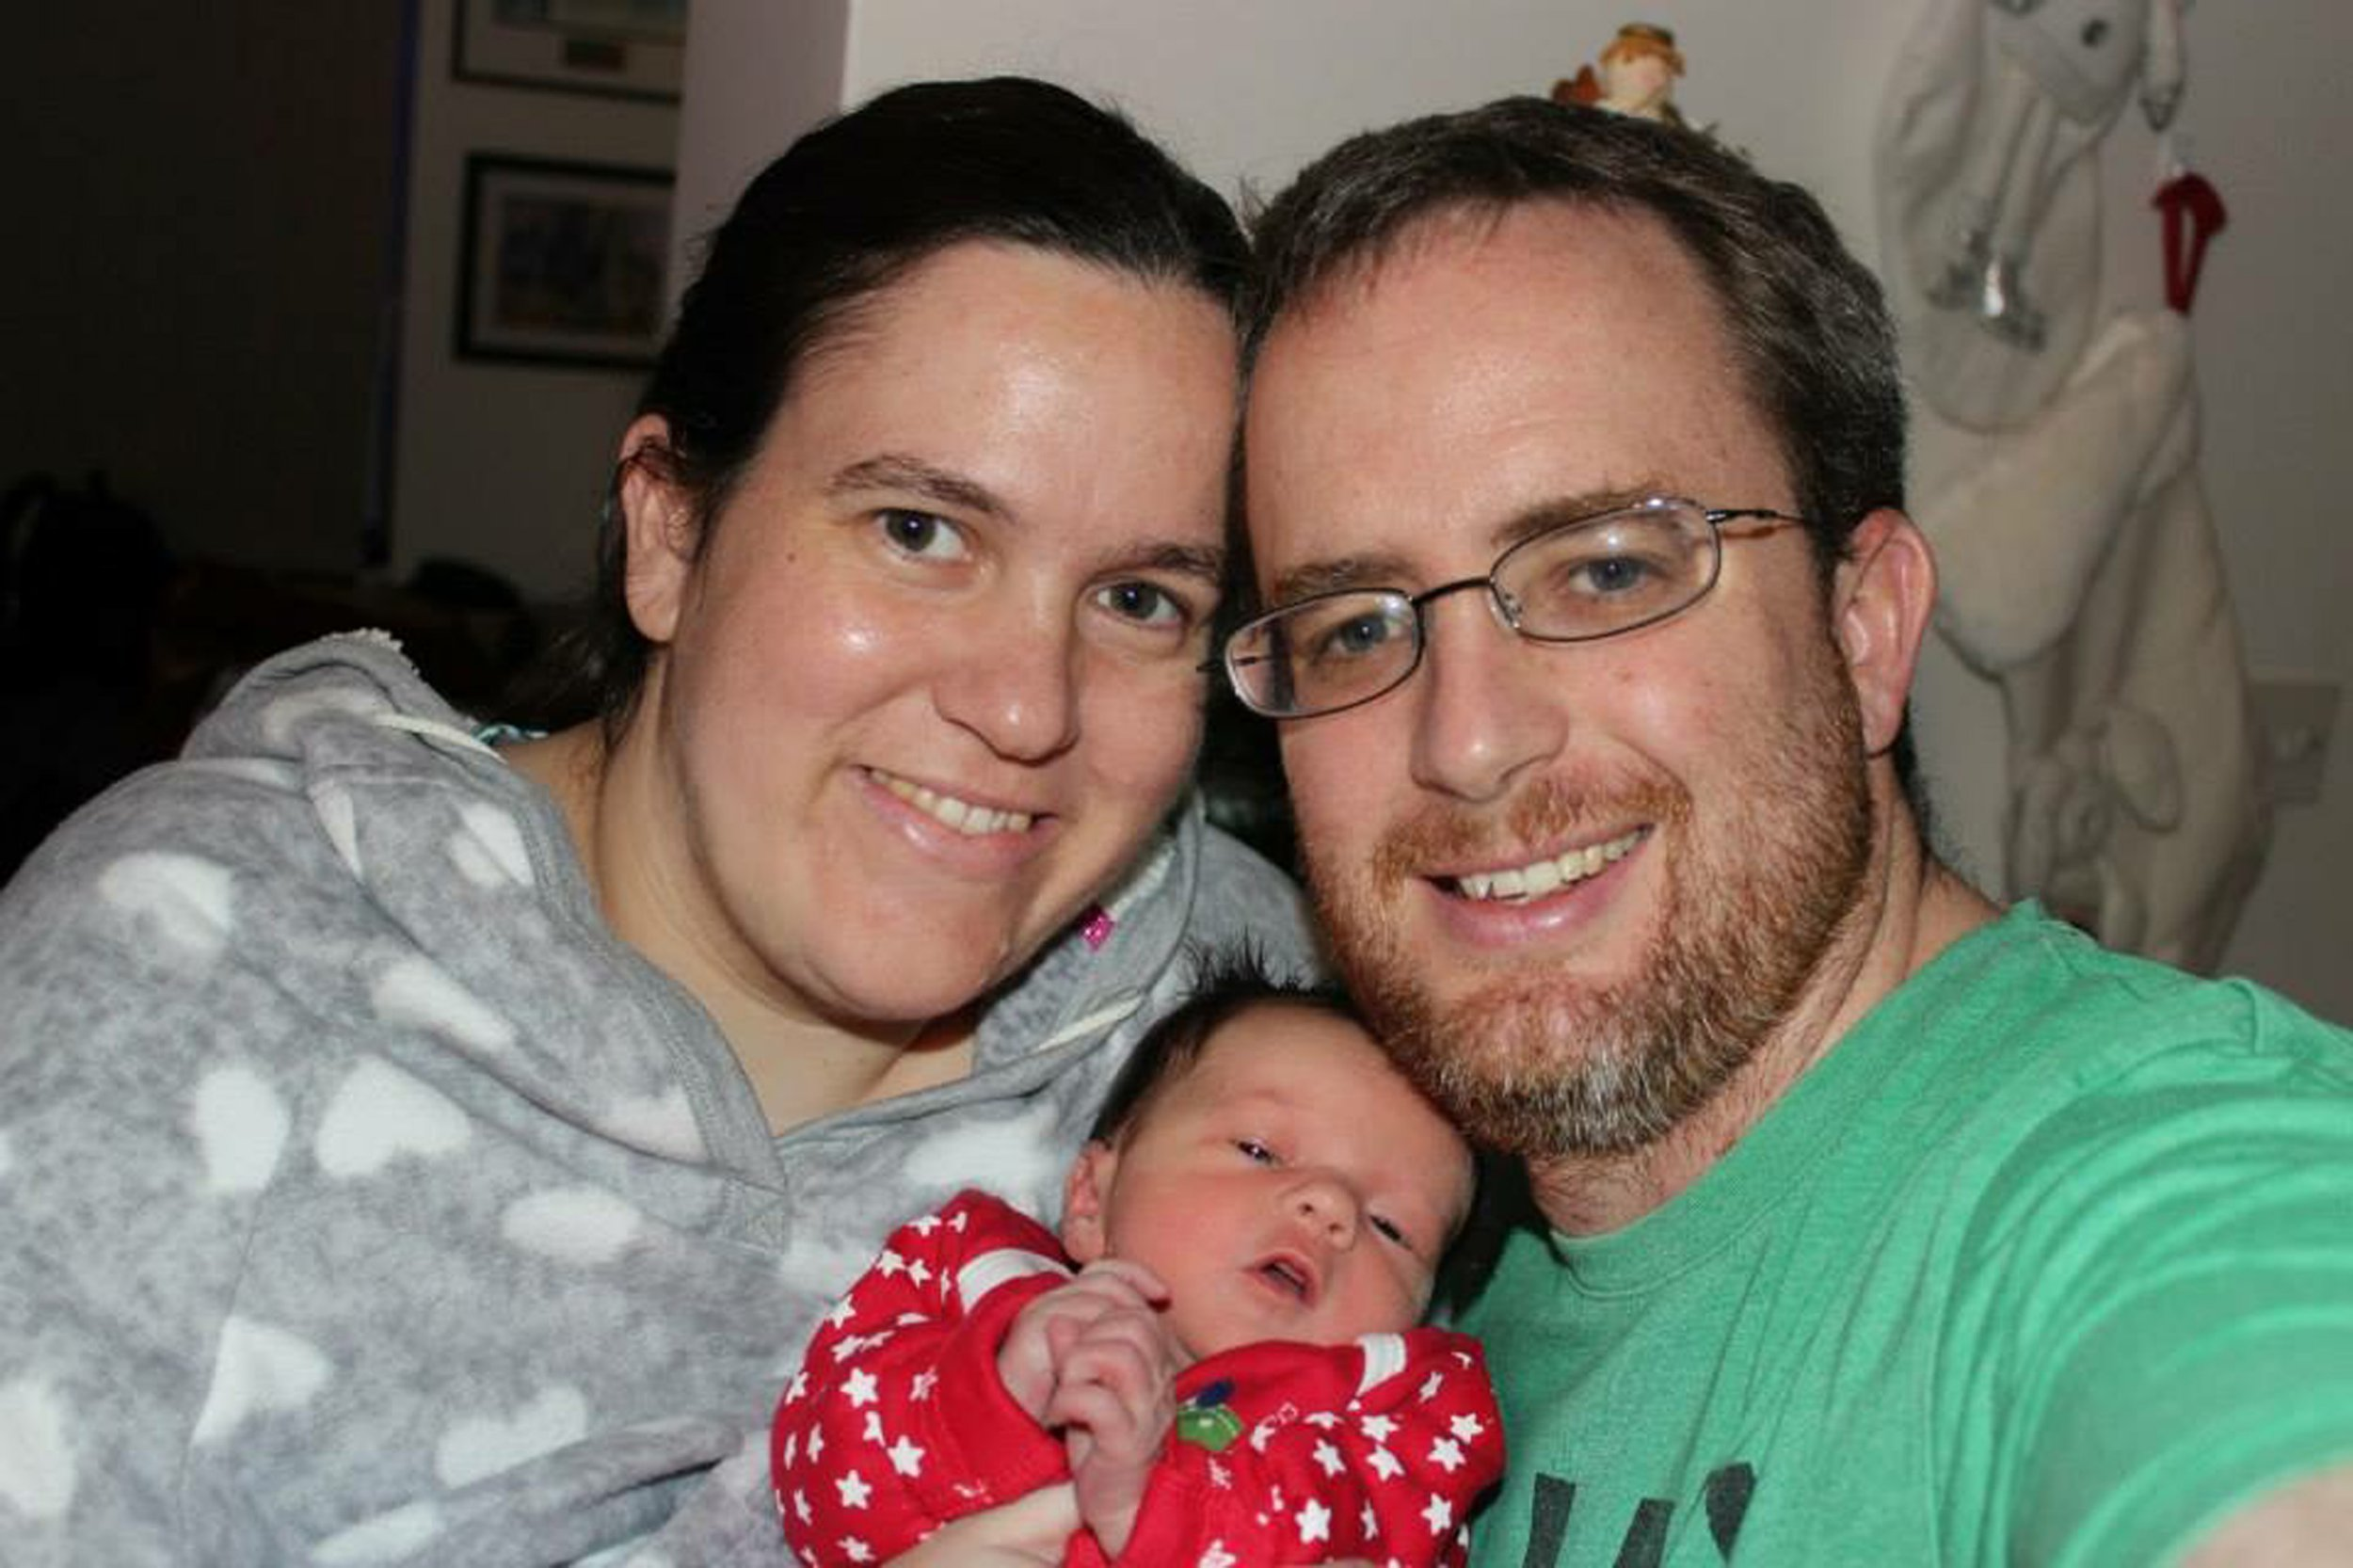 """INS News Agency Ltd. 07/11/2018 File picture - A mother who collapsed and died just weeks after giving birth was told by her doctor she had suffered an anxiety attack and should """"go away and do something fun and come back when you are feeling more relaxed."""" GP Dr Nuala Morton was taken to task by a coroner today (Tues) who criticised her for not keeping notes about her patient's visit to the surgery. The shocking claim that she should go off and enjoy herself despite several collapses and fainting attacks were made at an inquest into the death of 32-year-old Michelle Roach, by her husband George as he gave evidence. Picture shows Michelle Roach with her husband George and baby daughter Mackenzie. See copy INSdoc"""